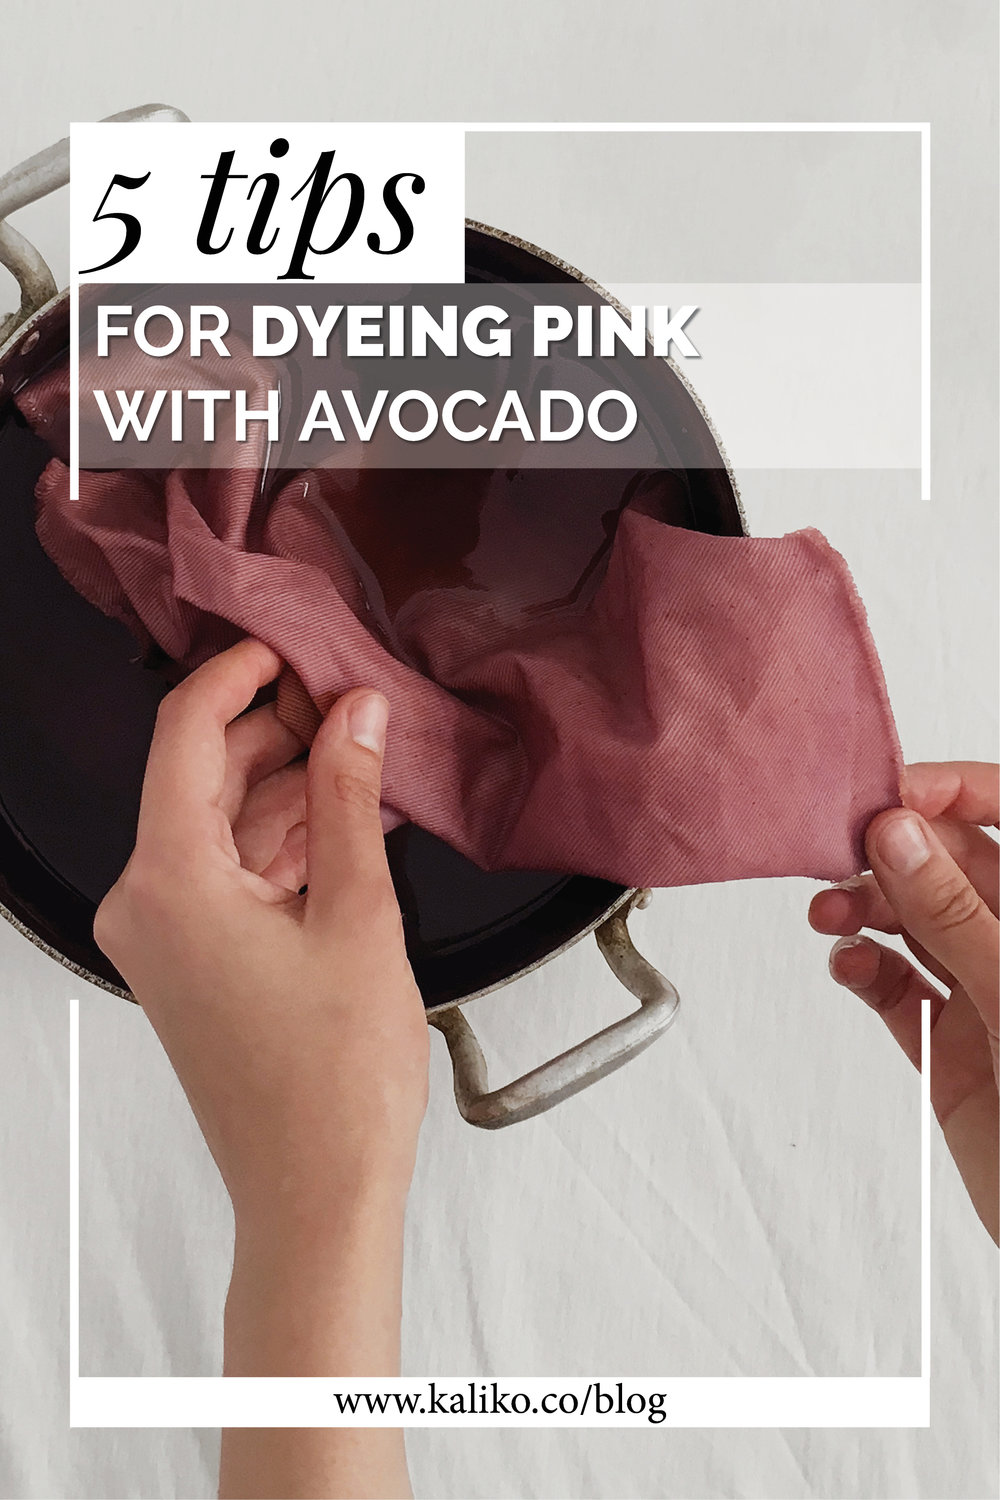 5 TIPS FOR DYEING PINK WITH AVOCADO